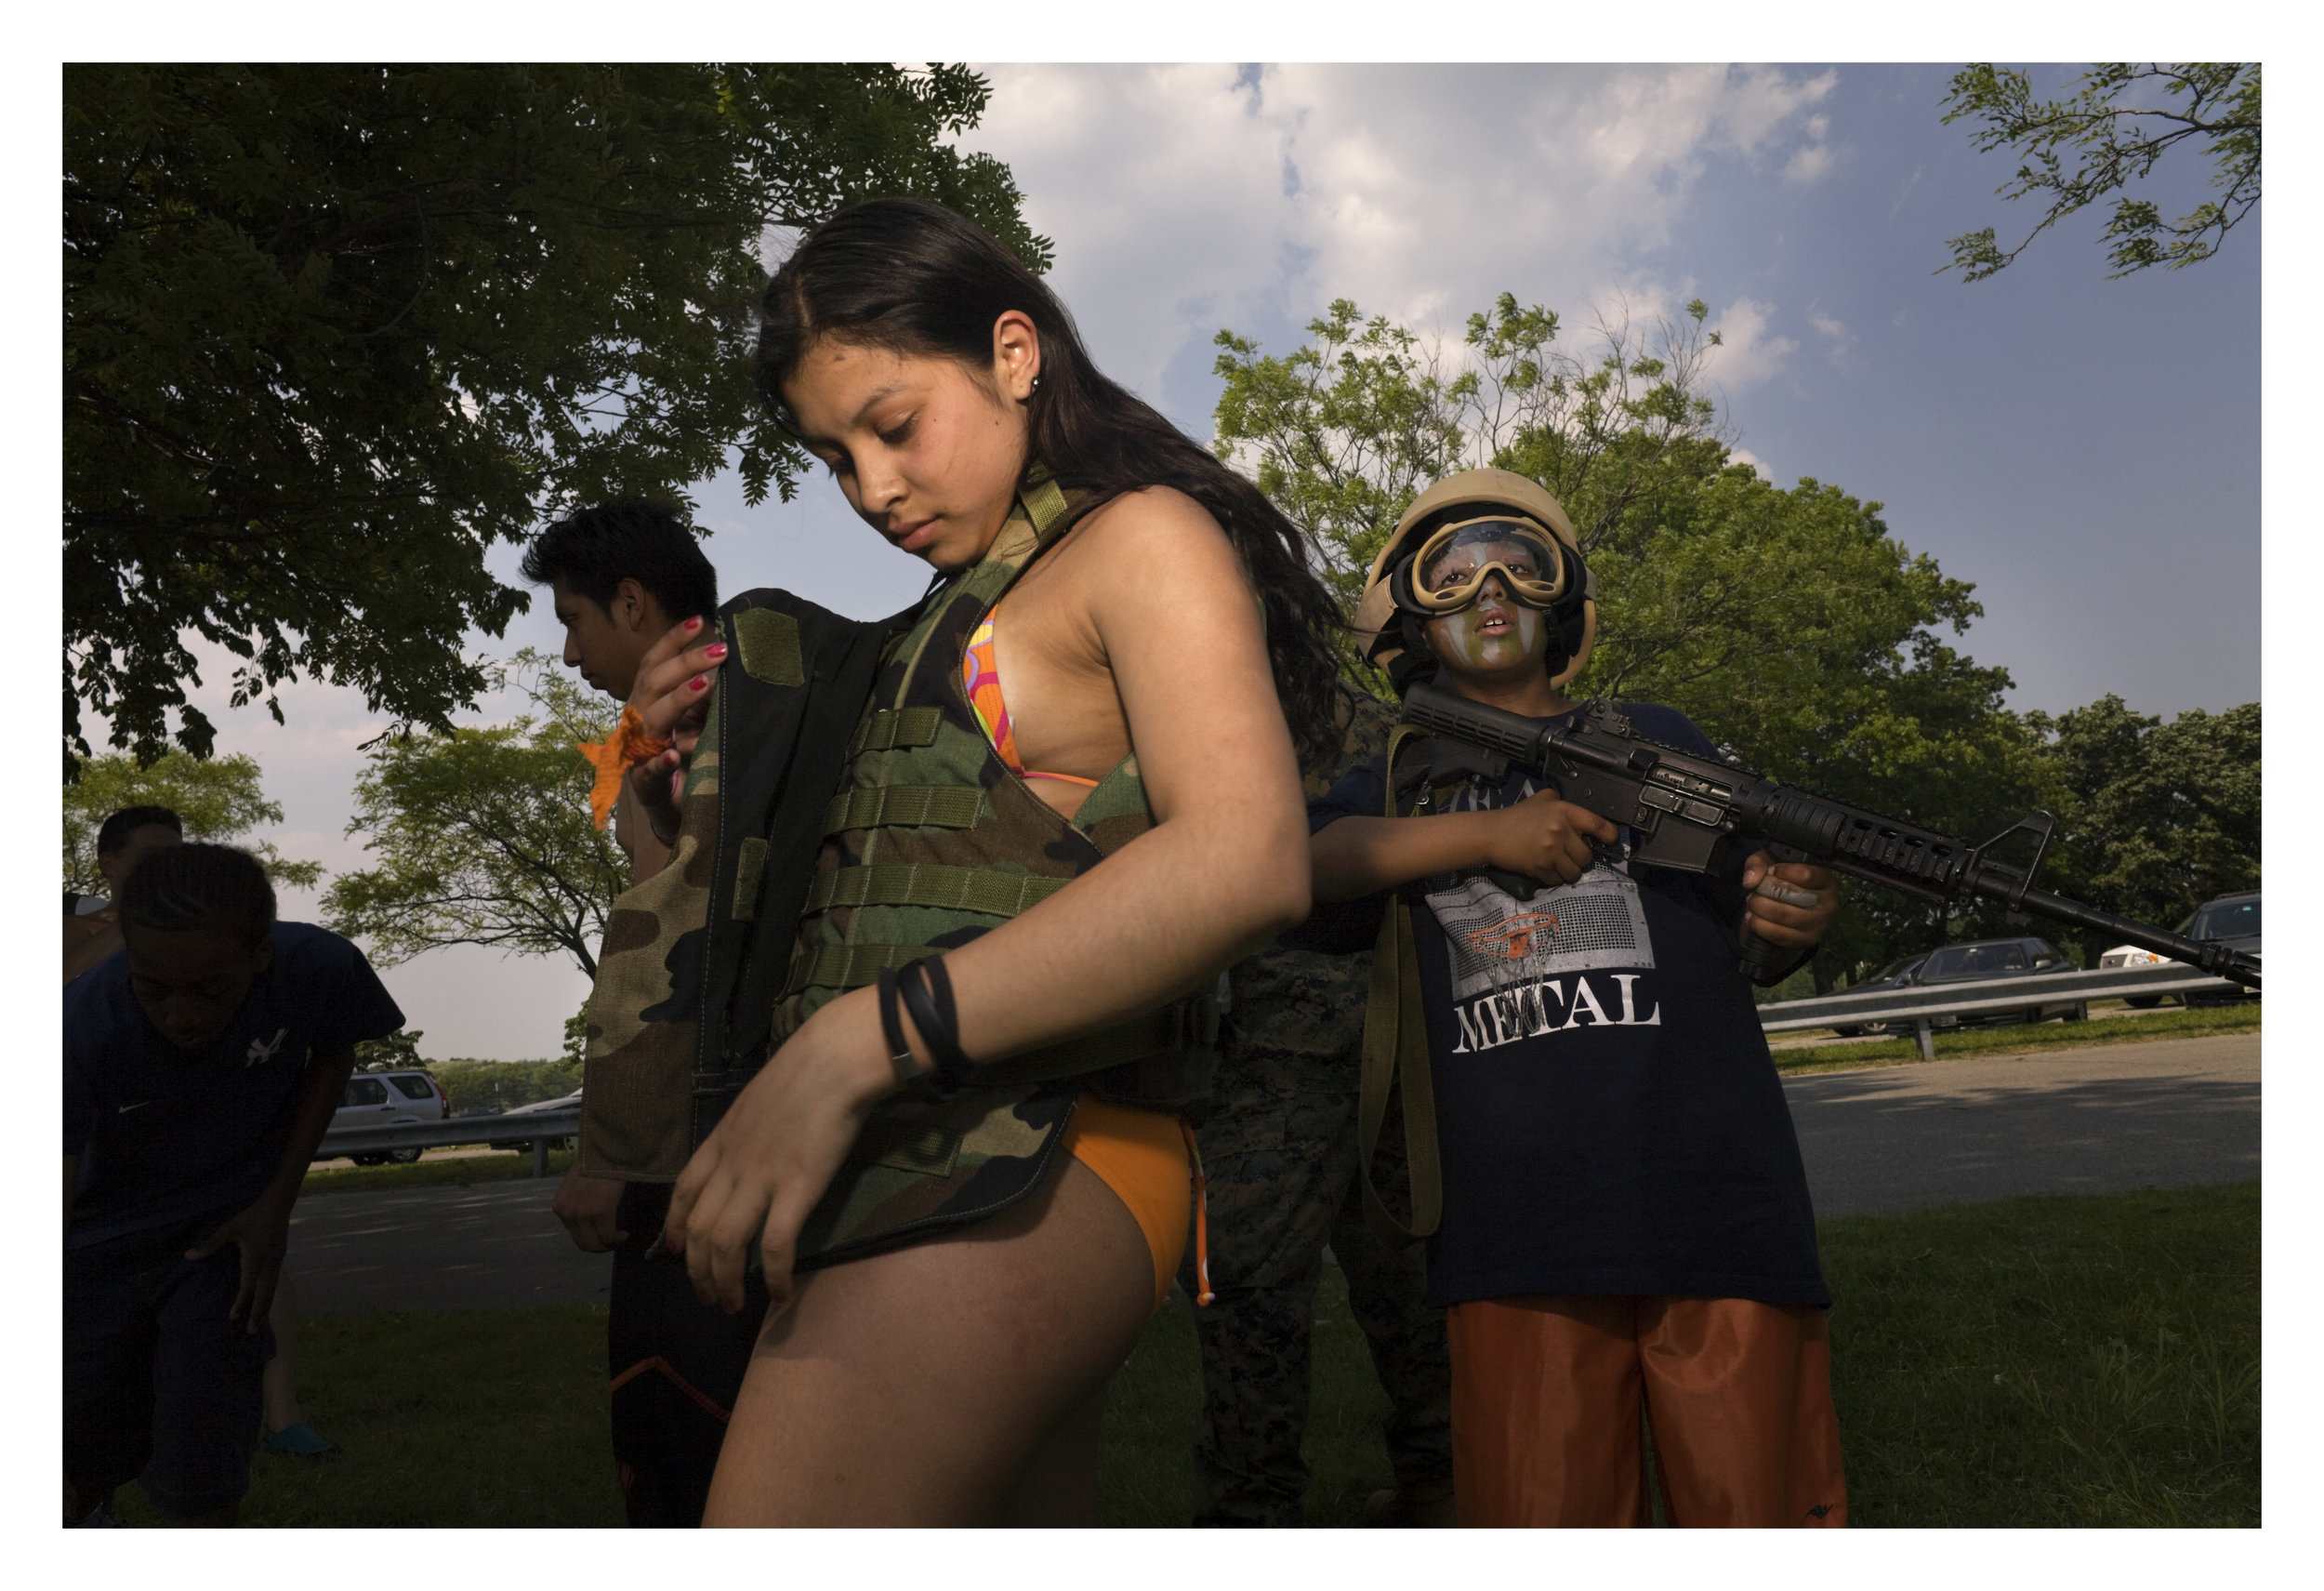 Marines land attack helicopters, paint children in camouflage and unfurl infantry weapons, including pistols with silencers for the public's amusement with the unspoken aim of recruiting new marines.     Orchard Beach,  Bronx, NY  2007